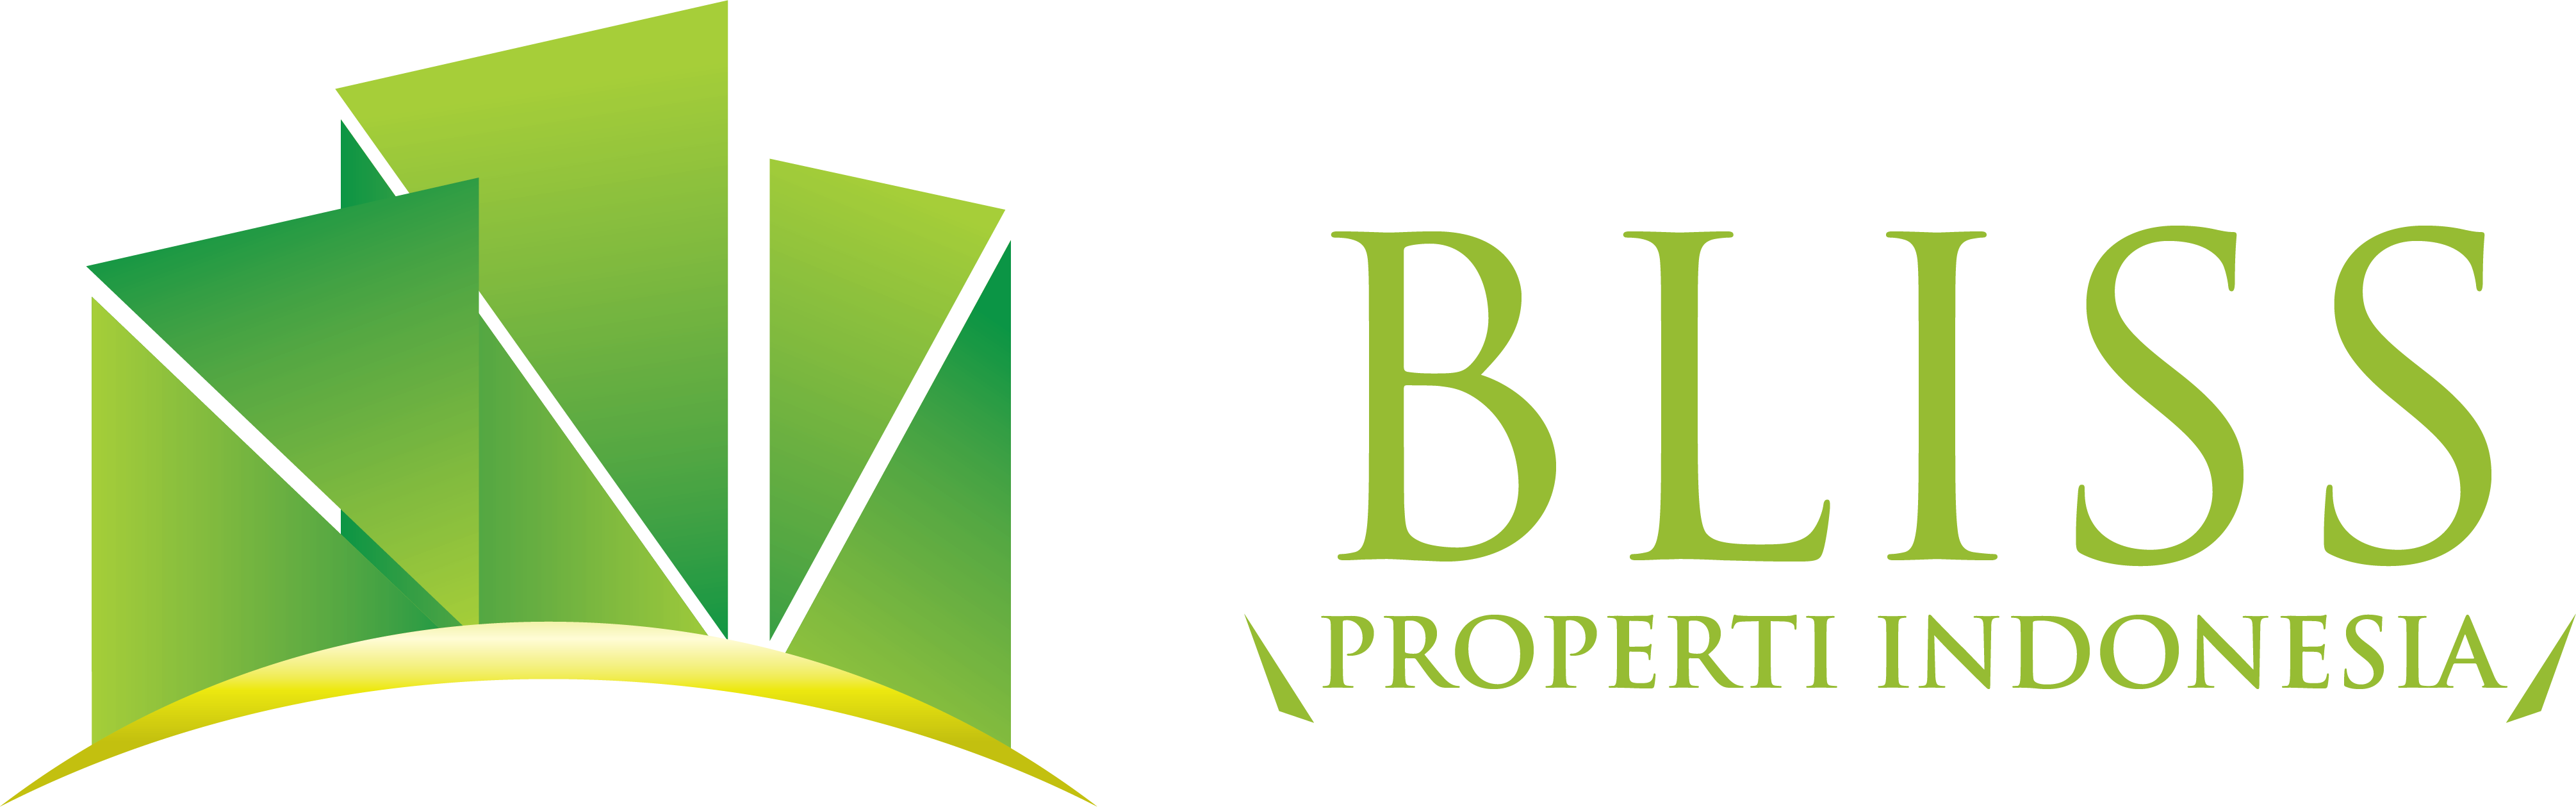 Bliss Properti Indonesia